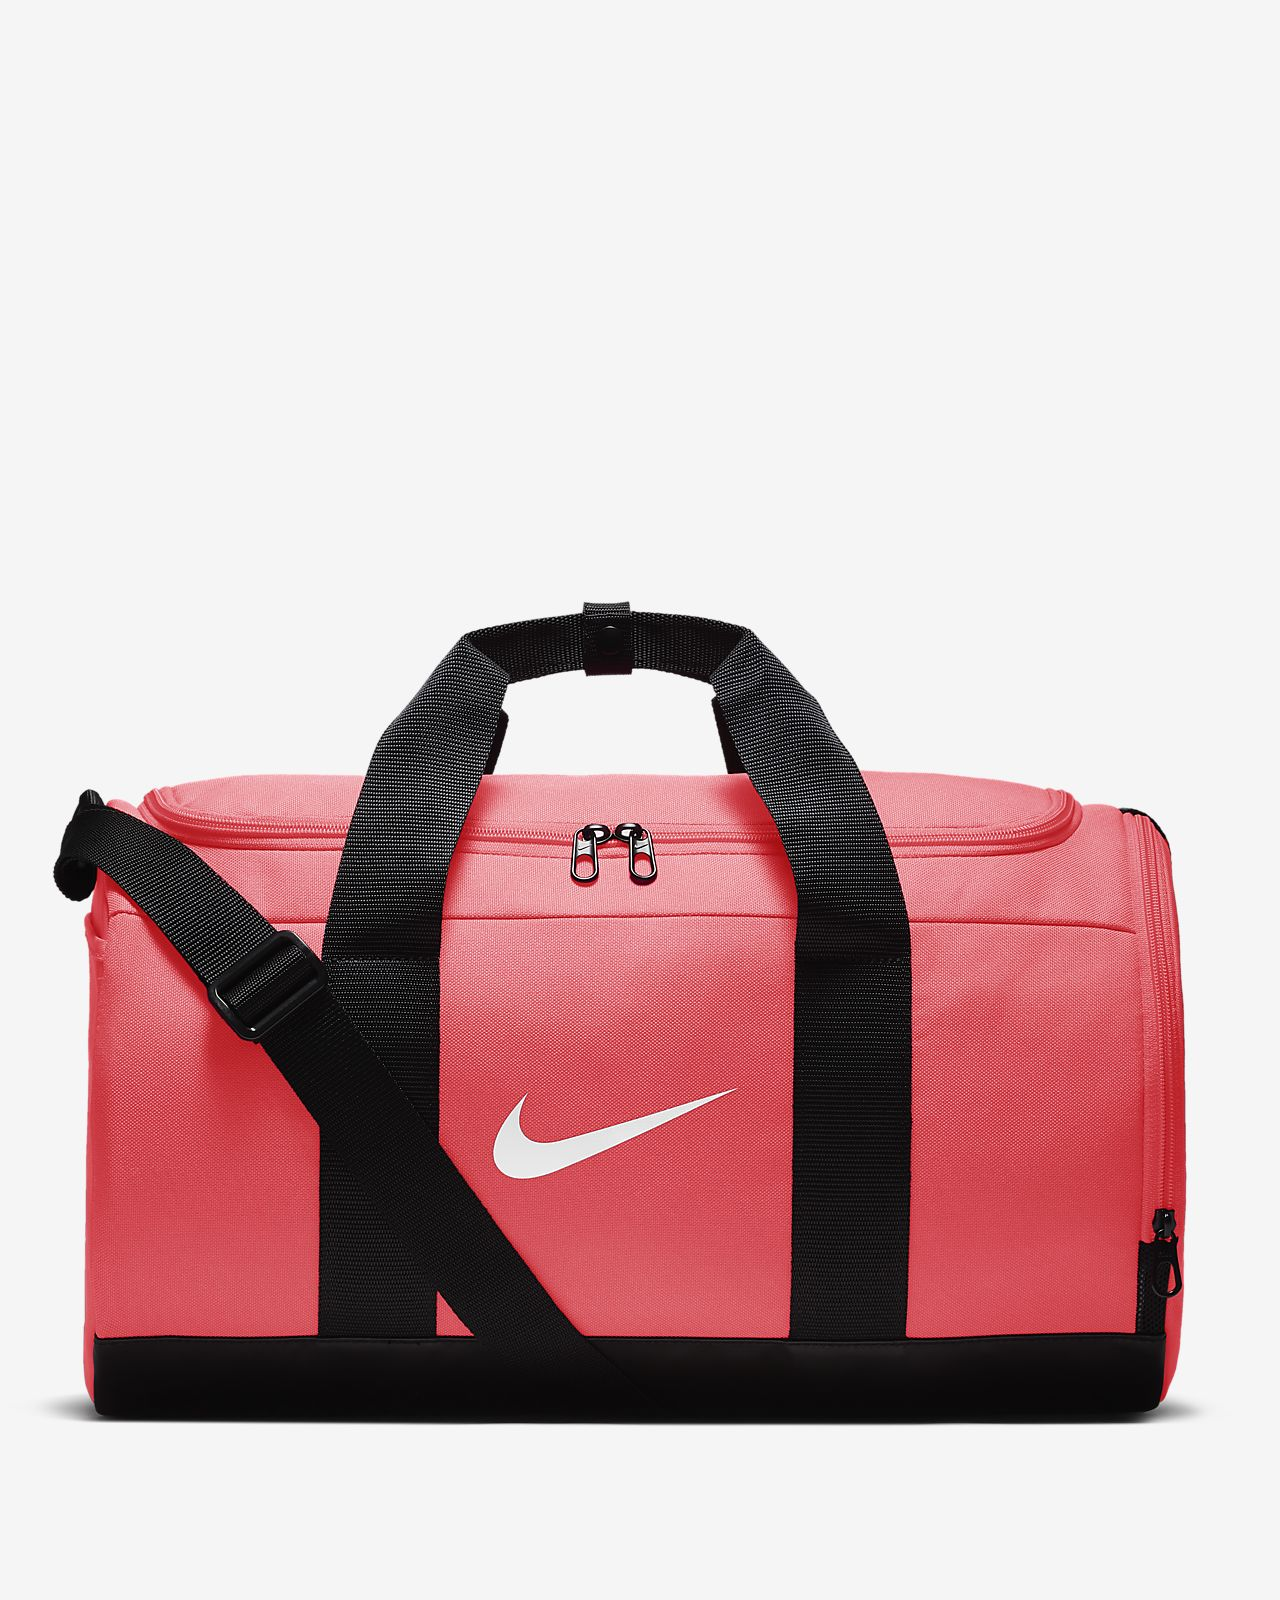 f8413c4e1a91 Nike Team Women s Training Duffel Bag. Nike.com AE